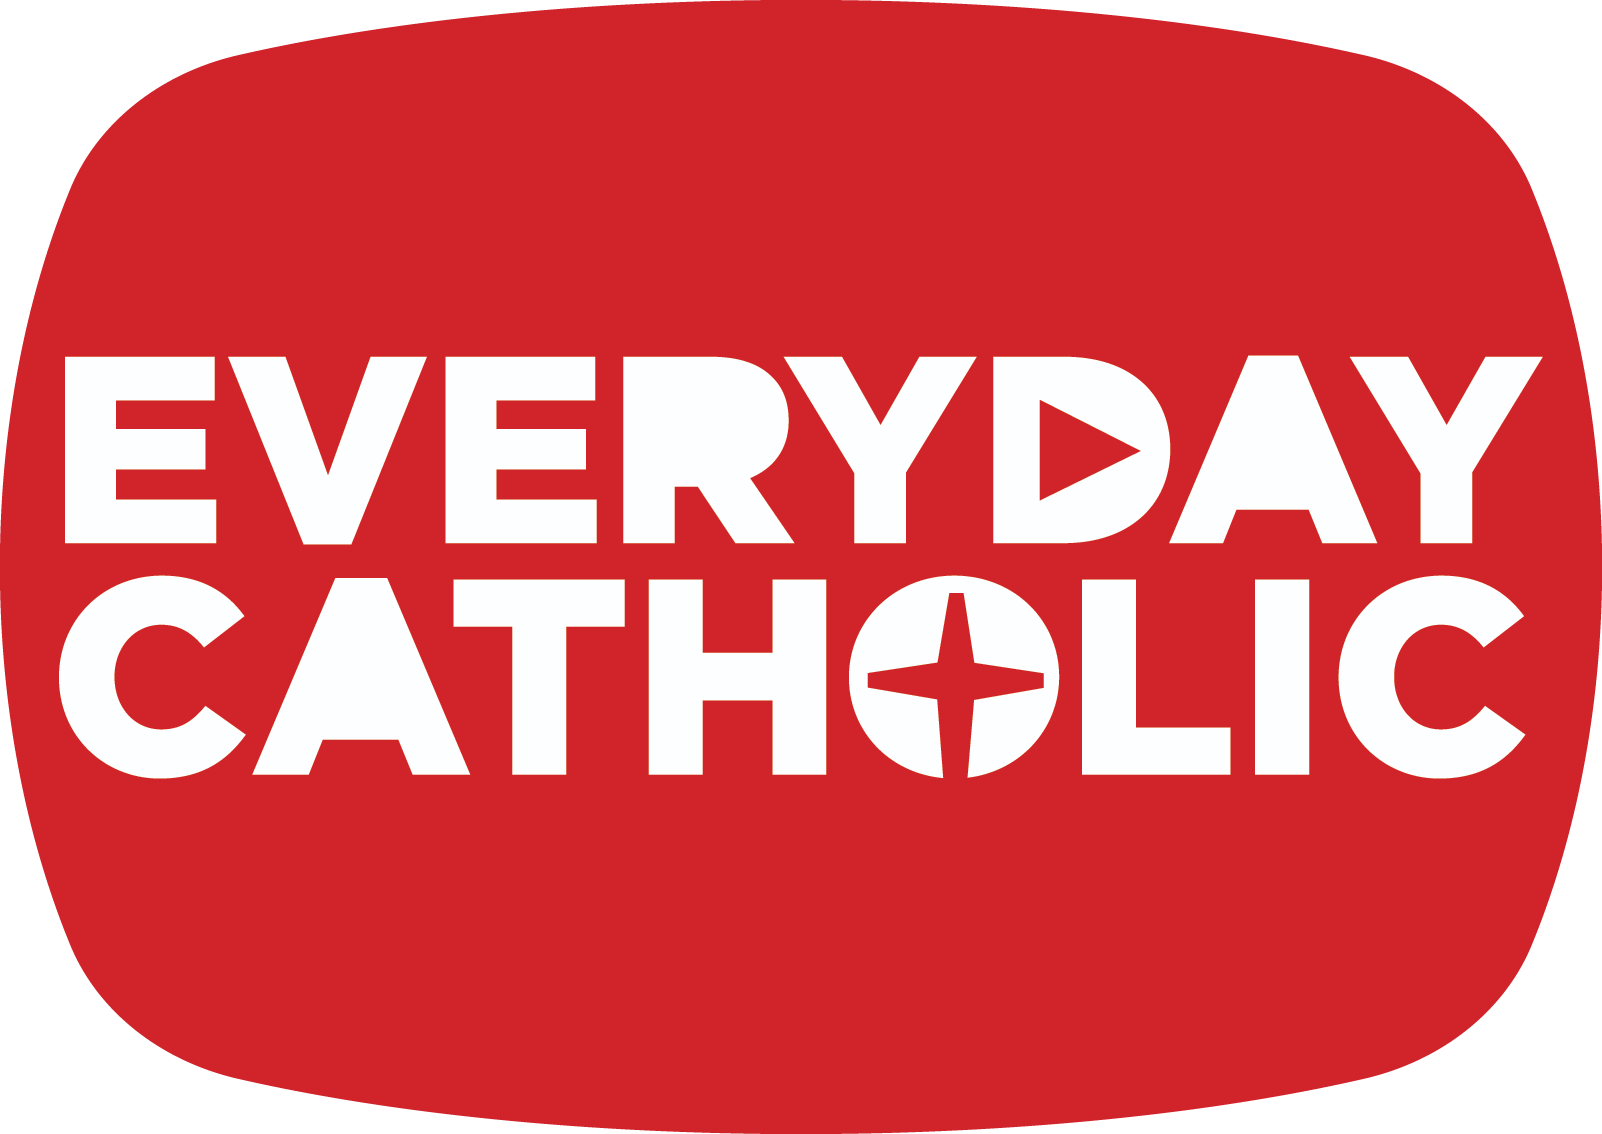 EVERYDAY_CATHOLIC.png